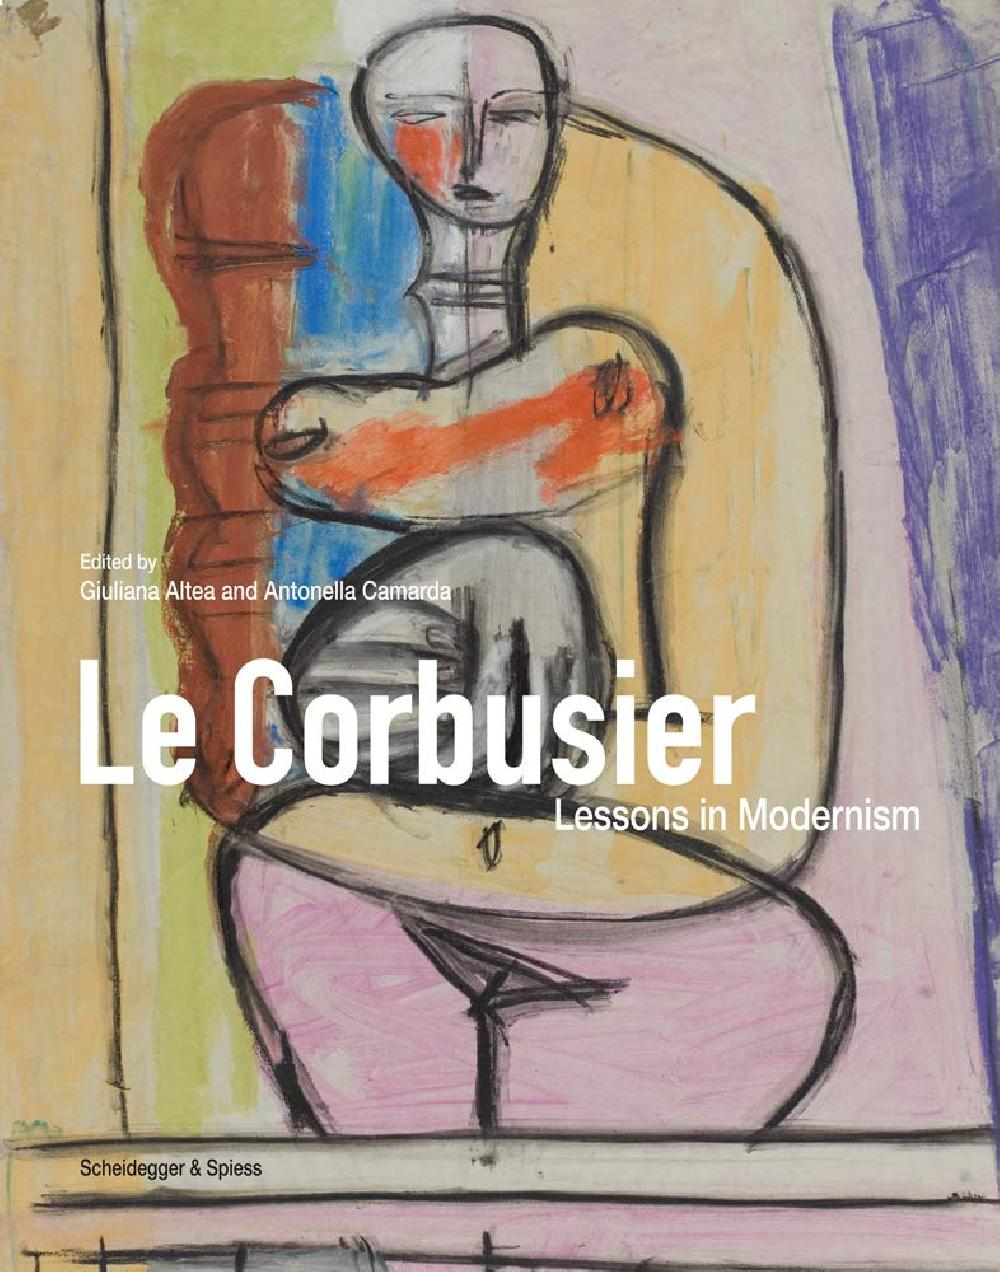 Le Corbusier Lessons in Modernism